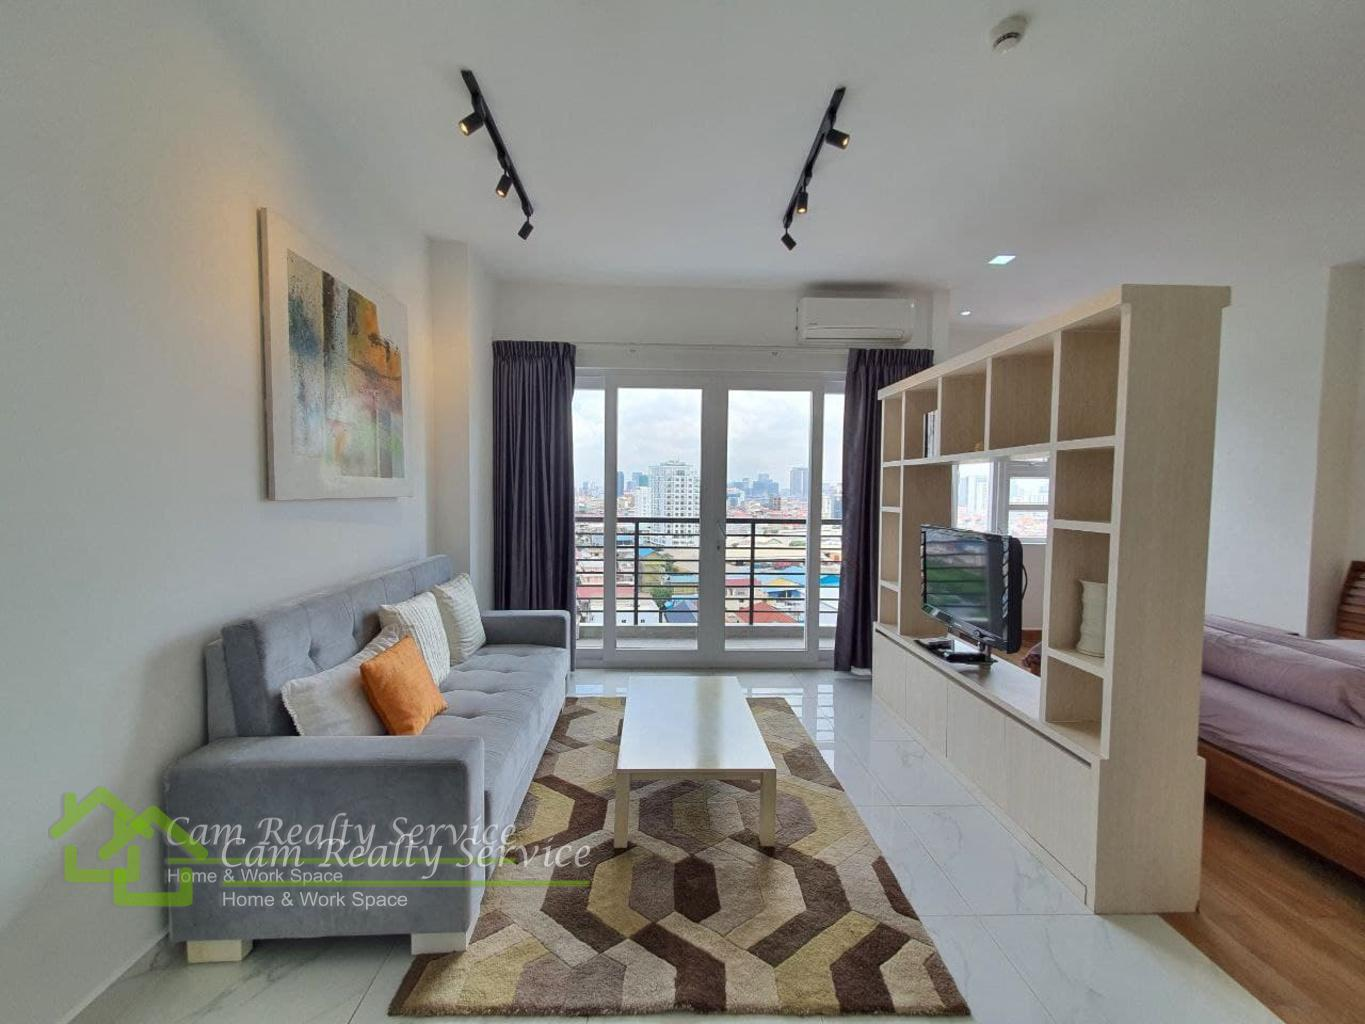 West part of Russian market area| Modern style studio apartment for rent 480$/month| Rooftop Pool, Gym, Steam & Sauna|